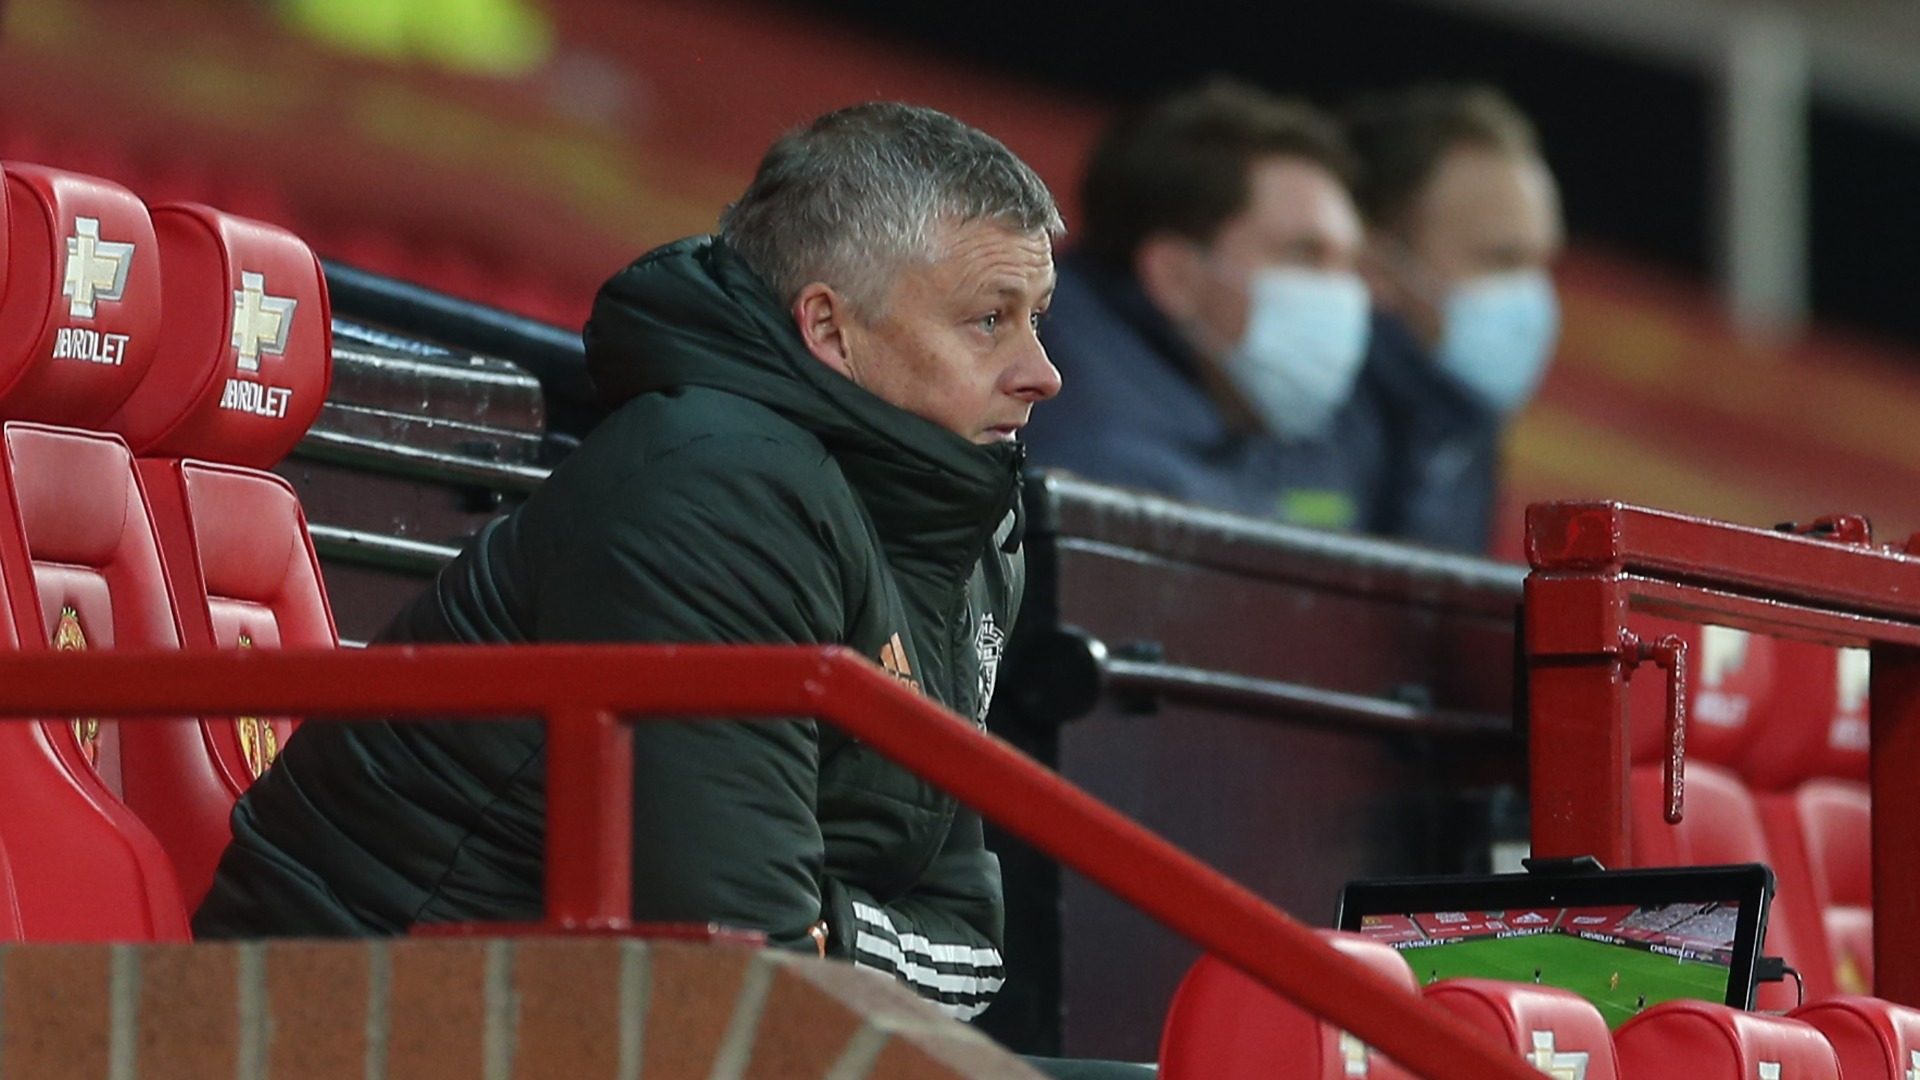 Premier League title race will be 'so tight', predicts Man Utd boss Solskjaer